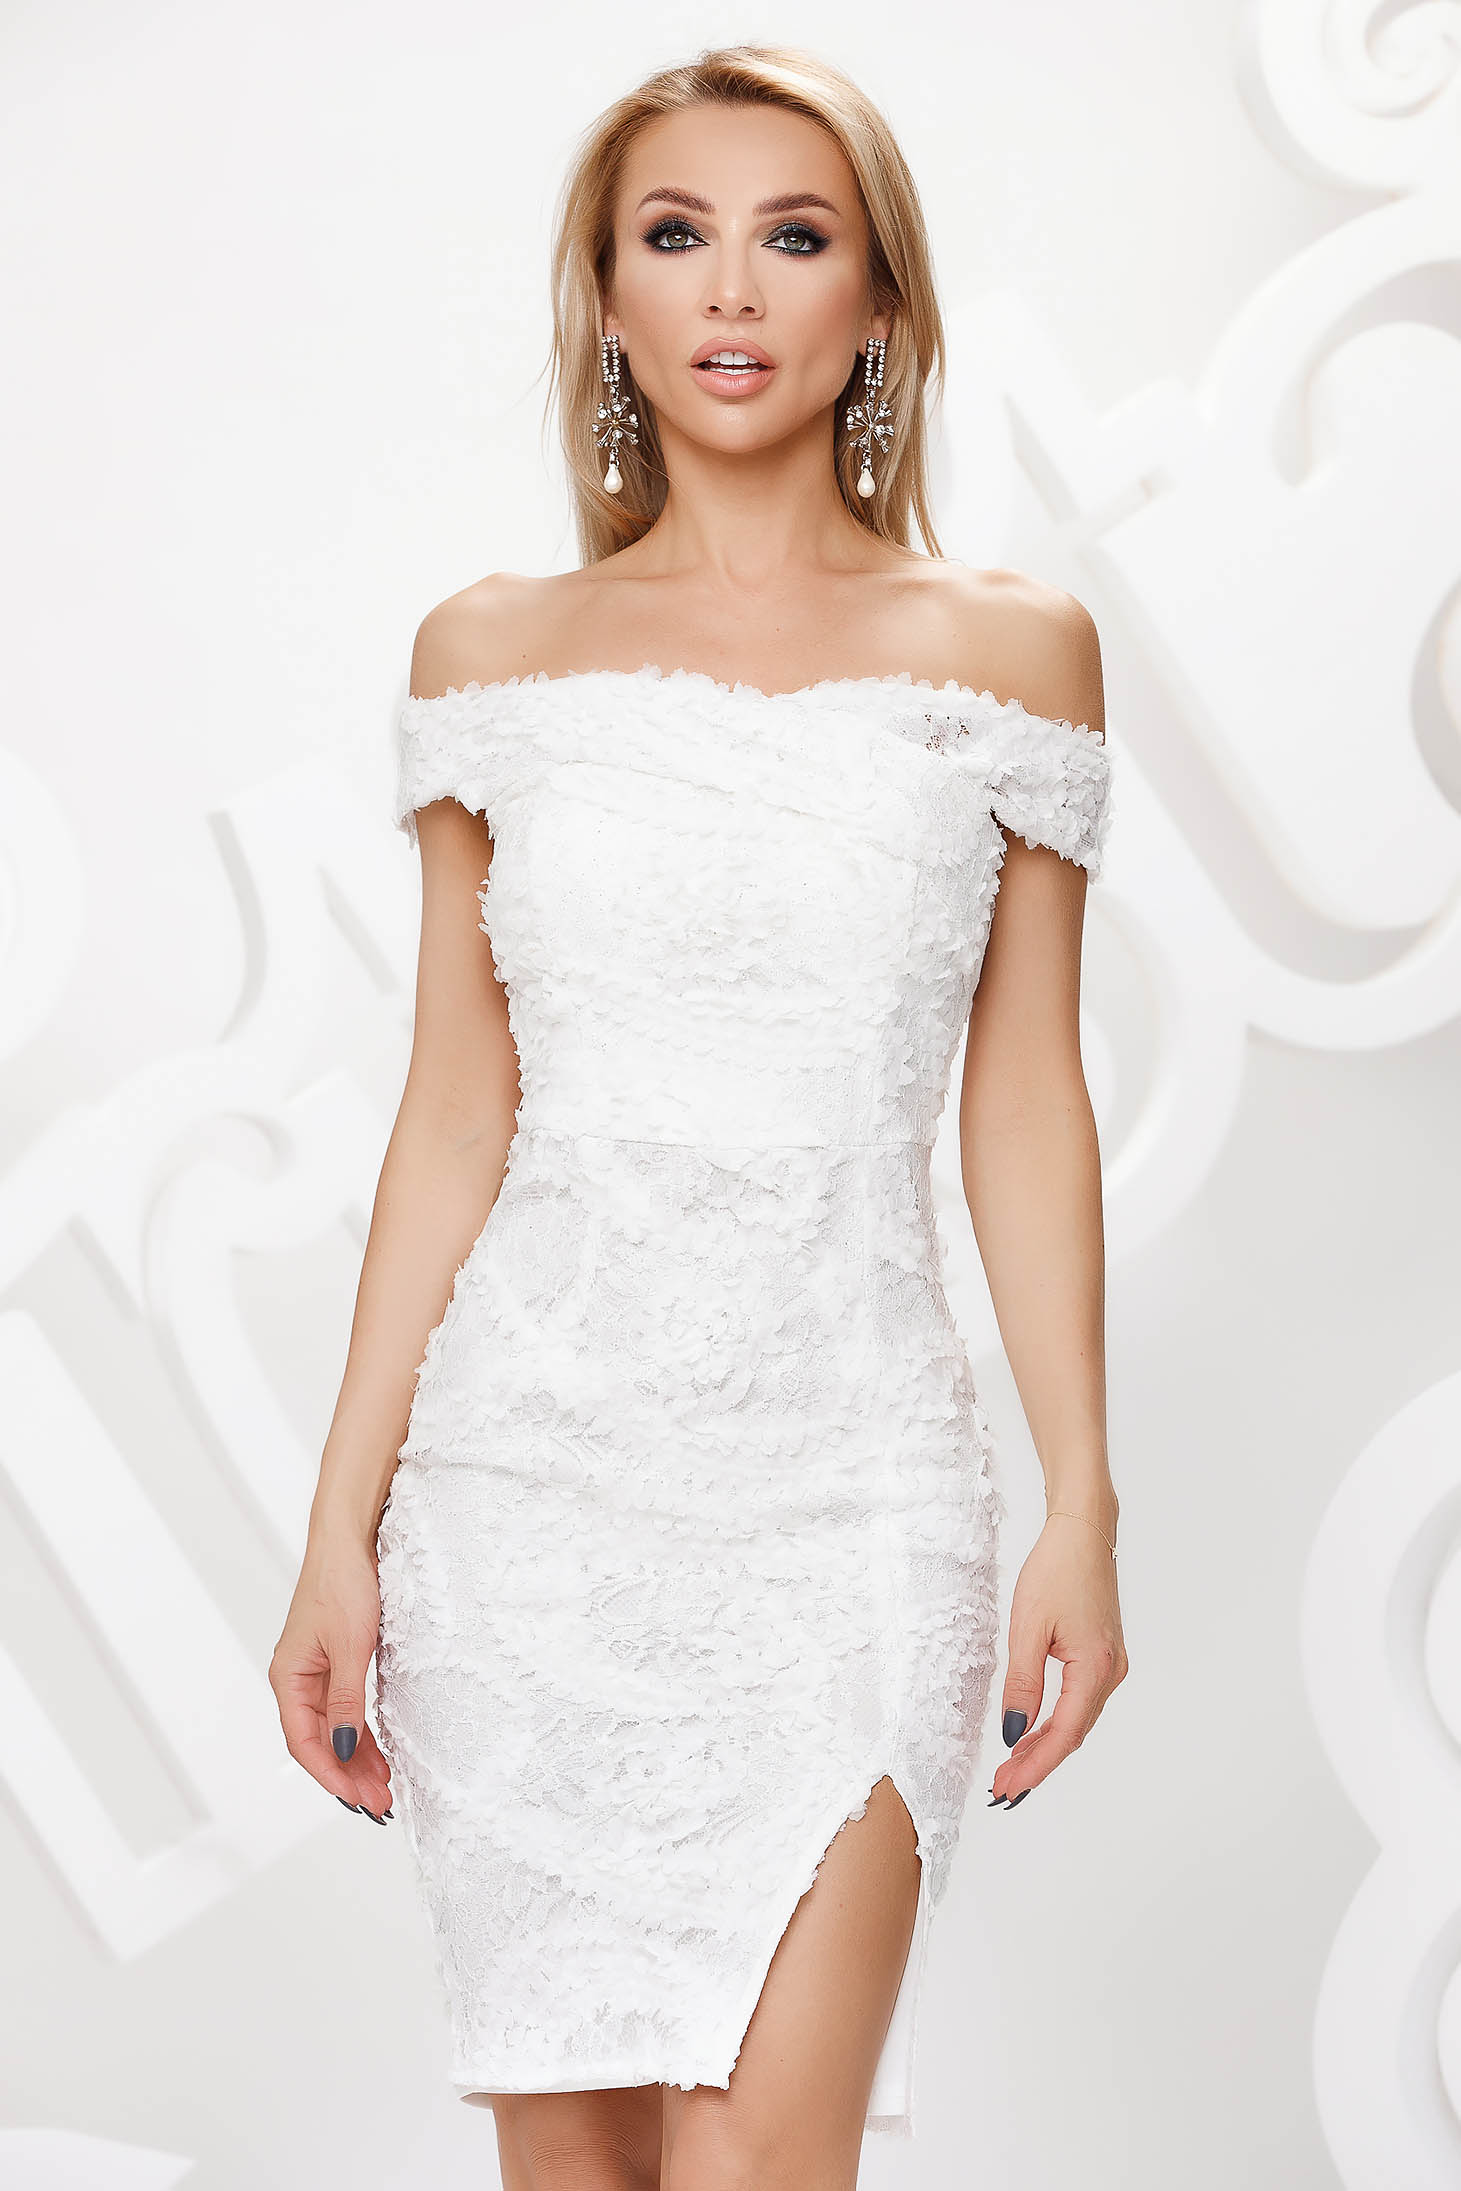 White dress from laced fabric occasional pencil short cut naked shoulders